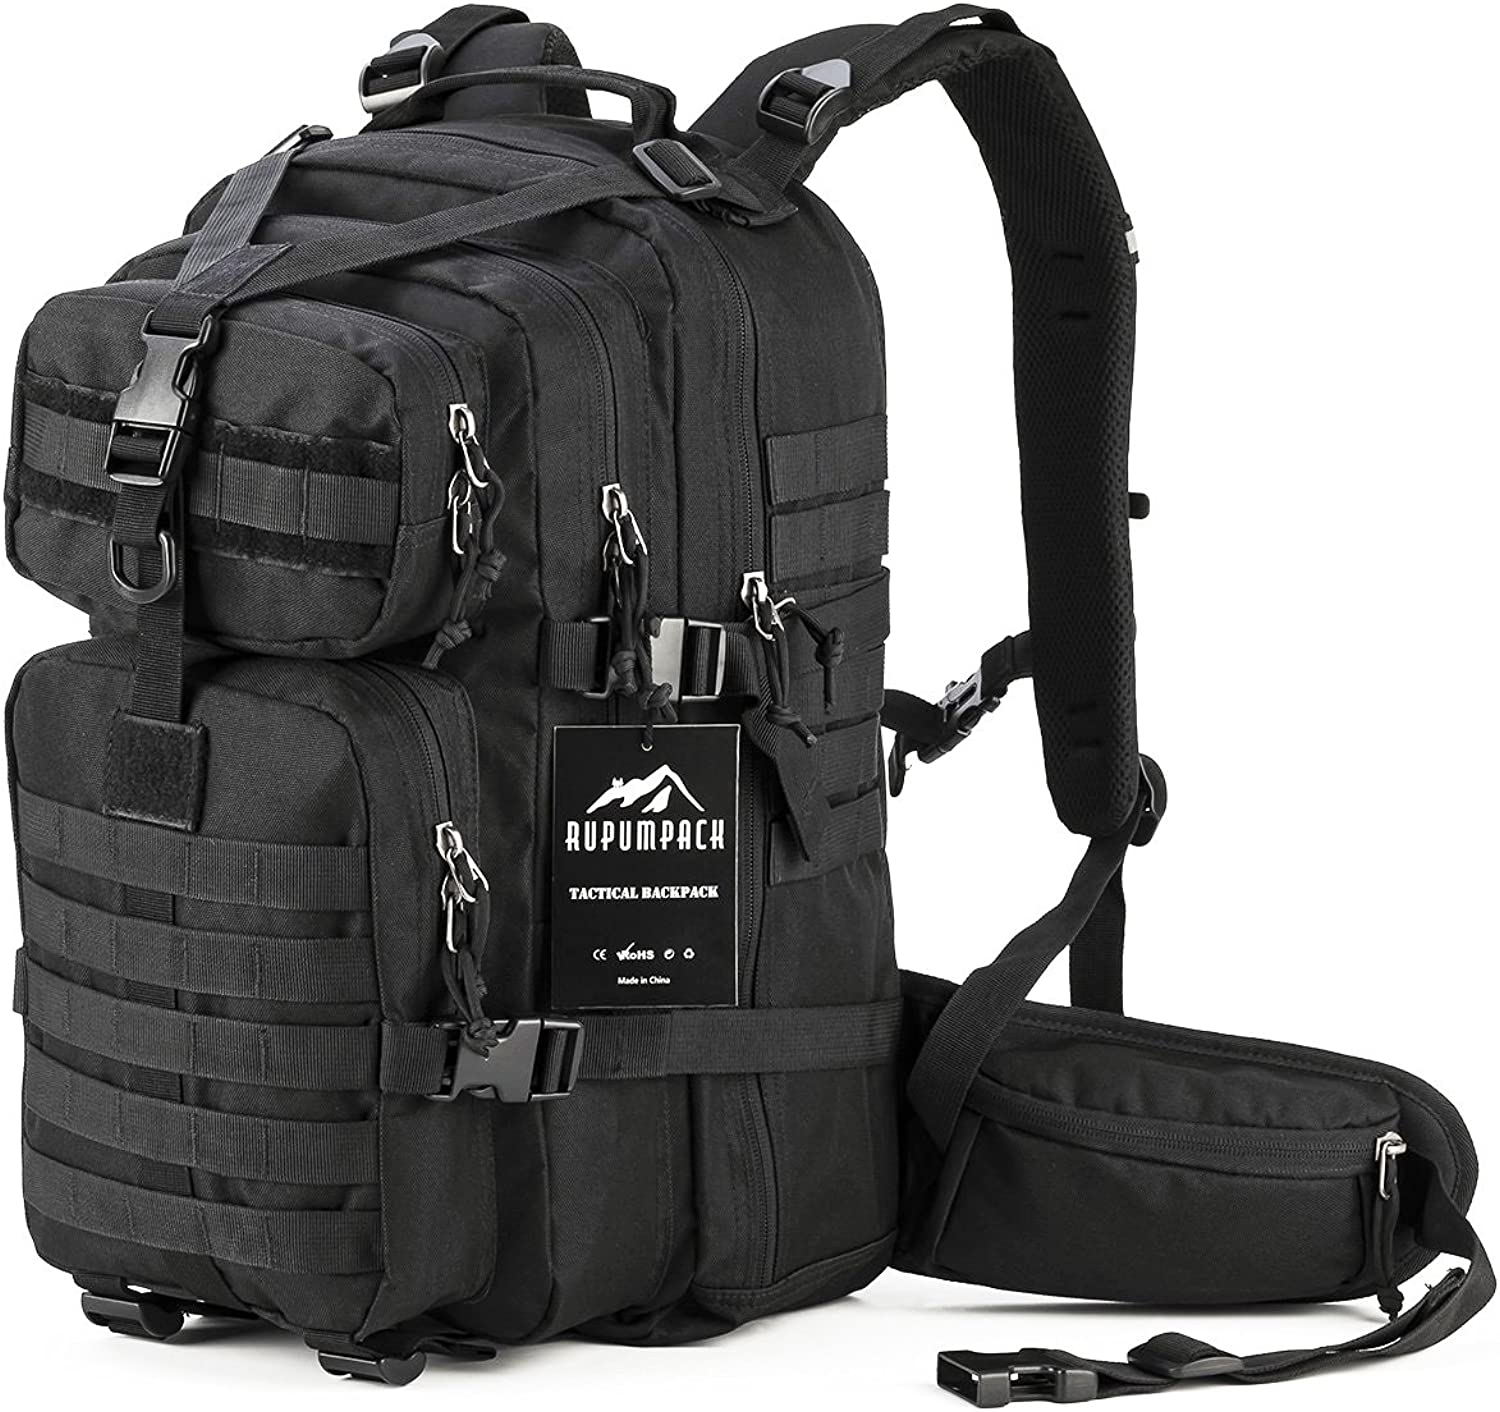 Military Tactical Backpack Hydration Pack, Army MOLLE Bug Out Bag for Hiking Camping Trekking School Pack